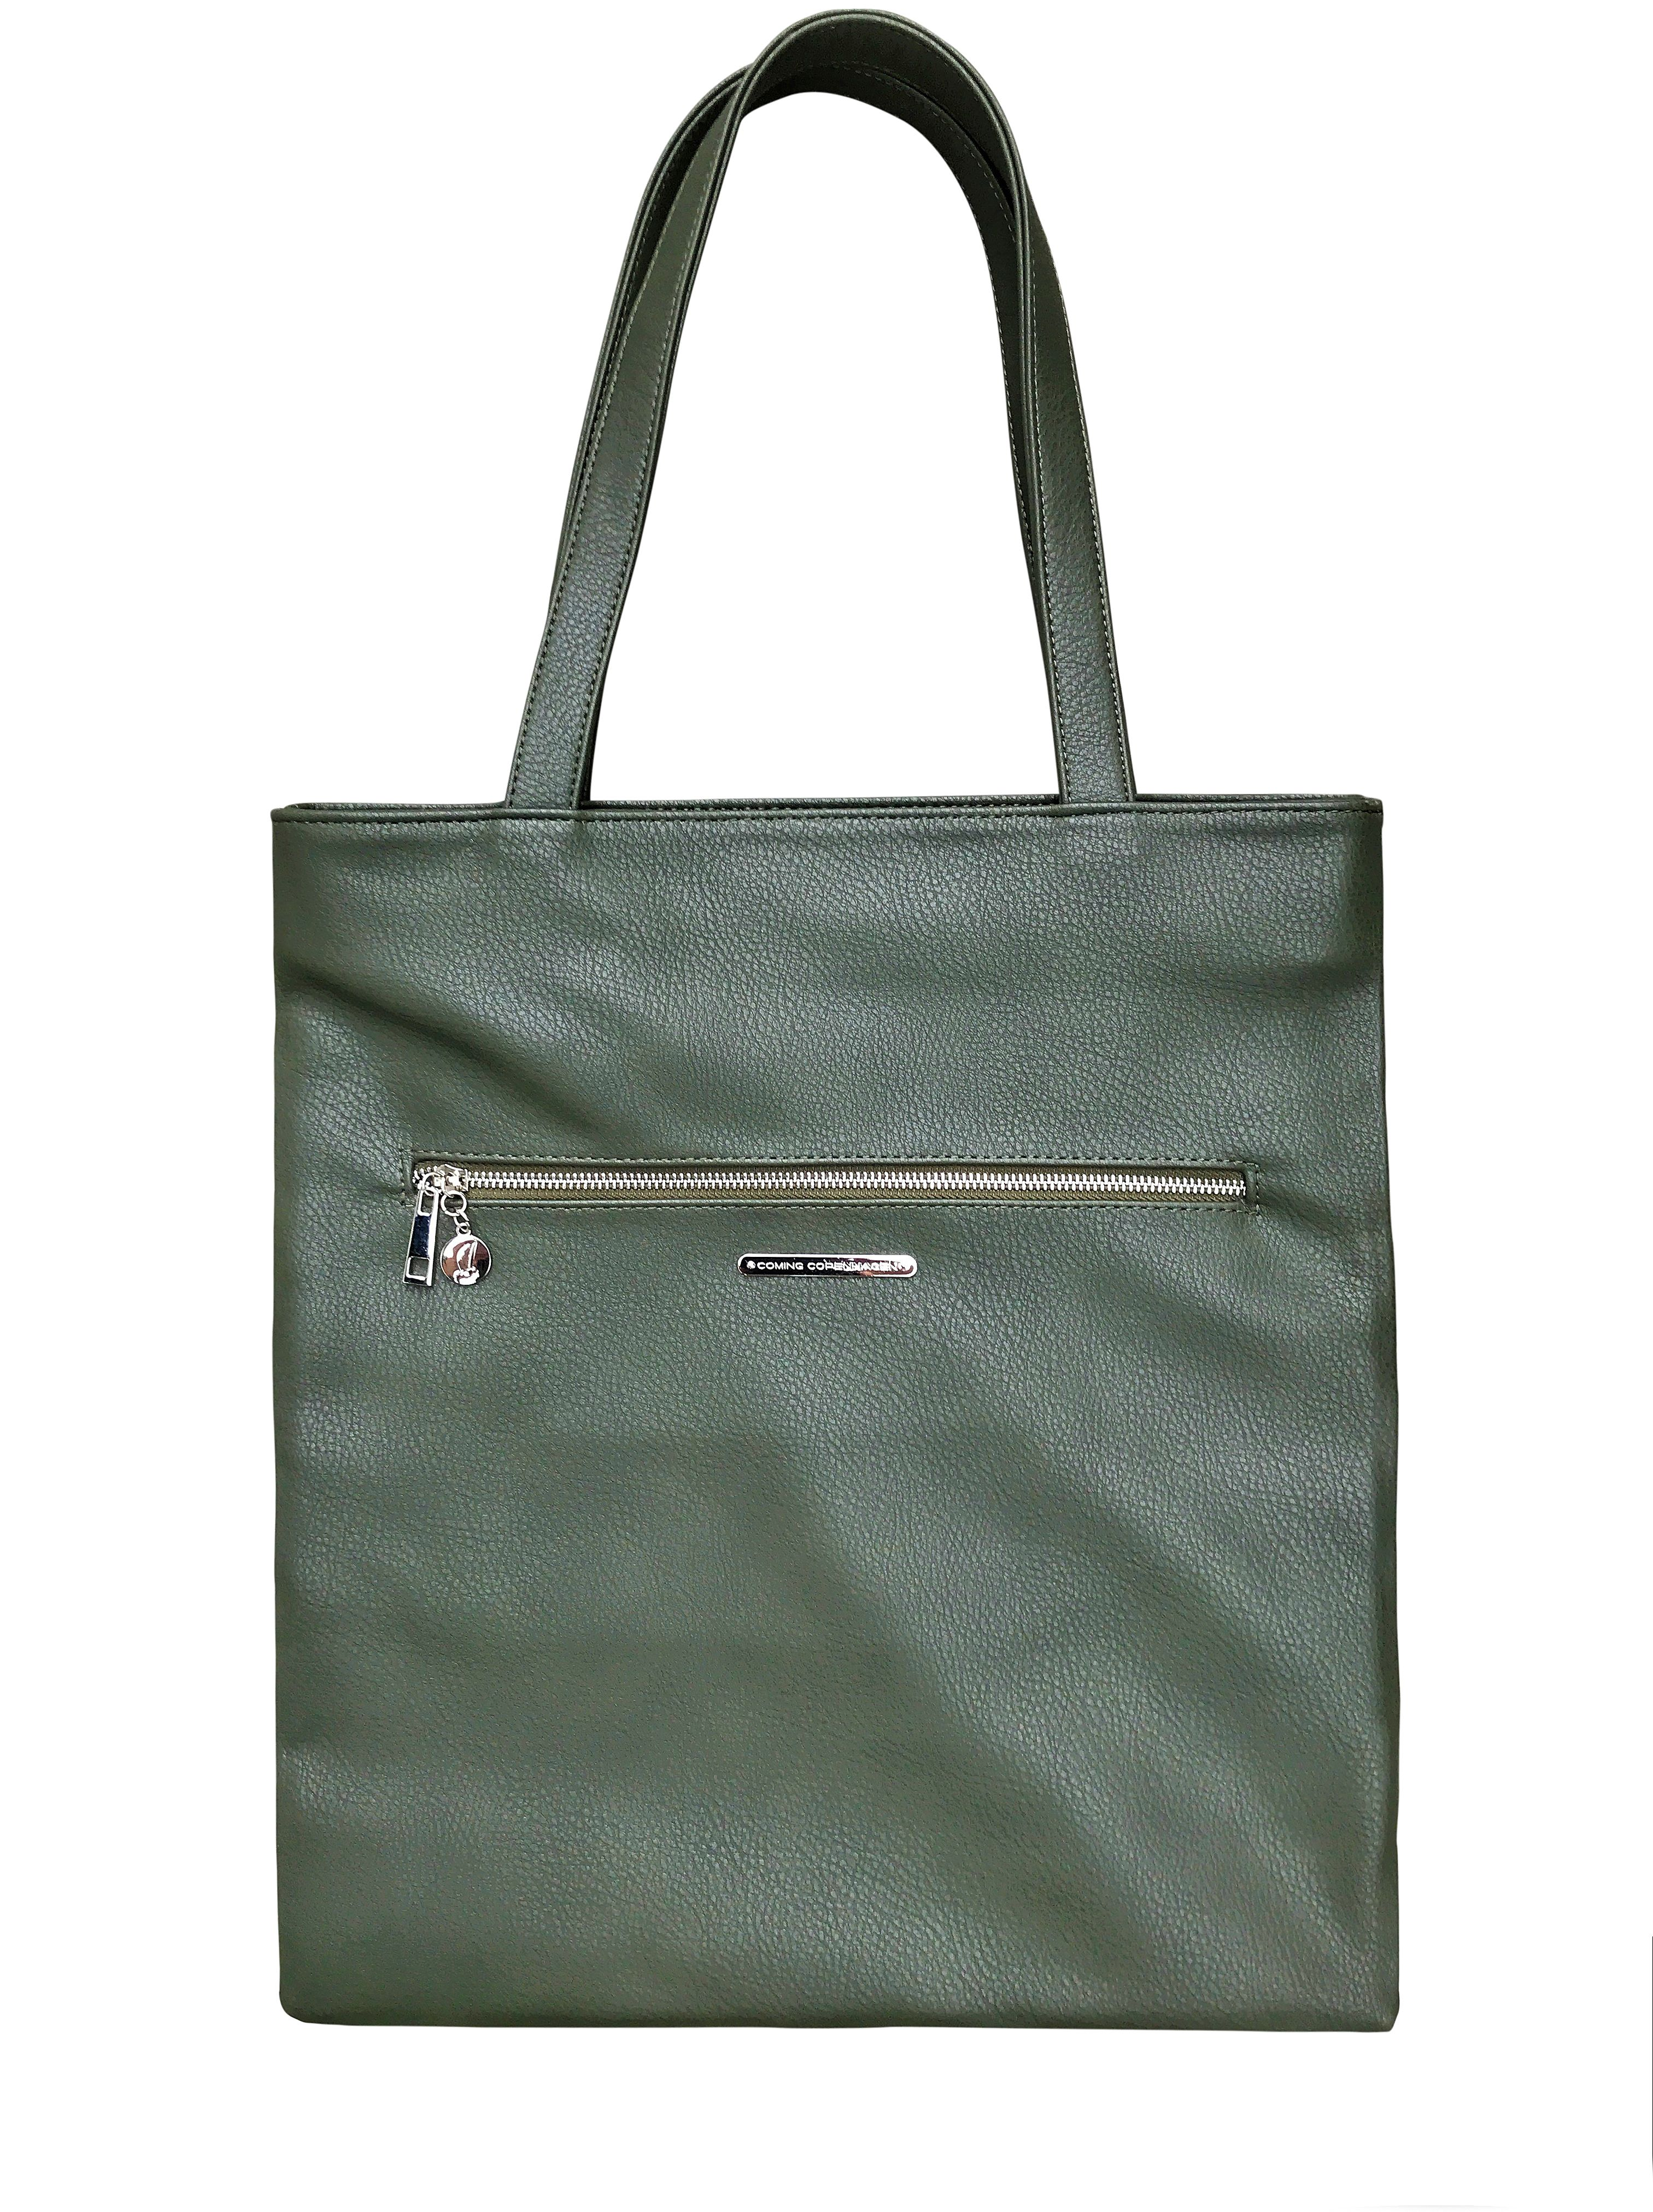 dbaec6e40bff An all-purpose tote fashioned from vegan leather. Features a voluminous  storage compartment